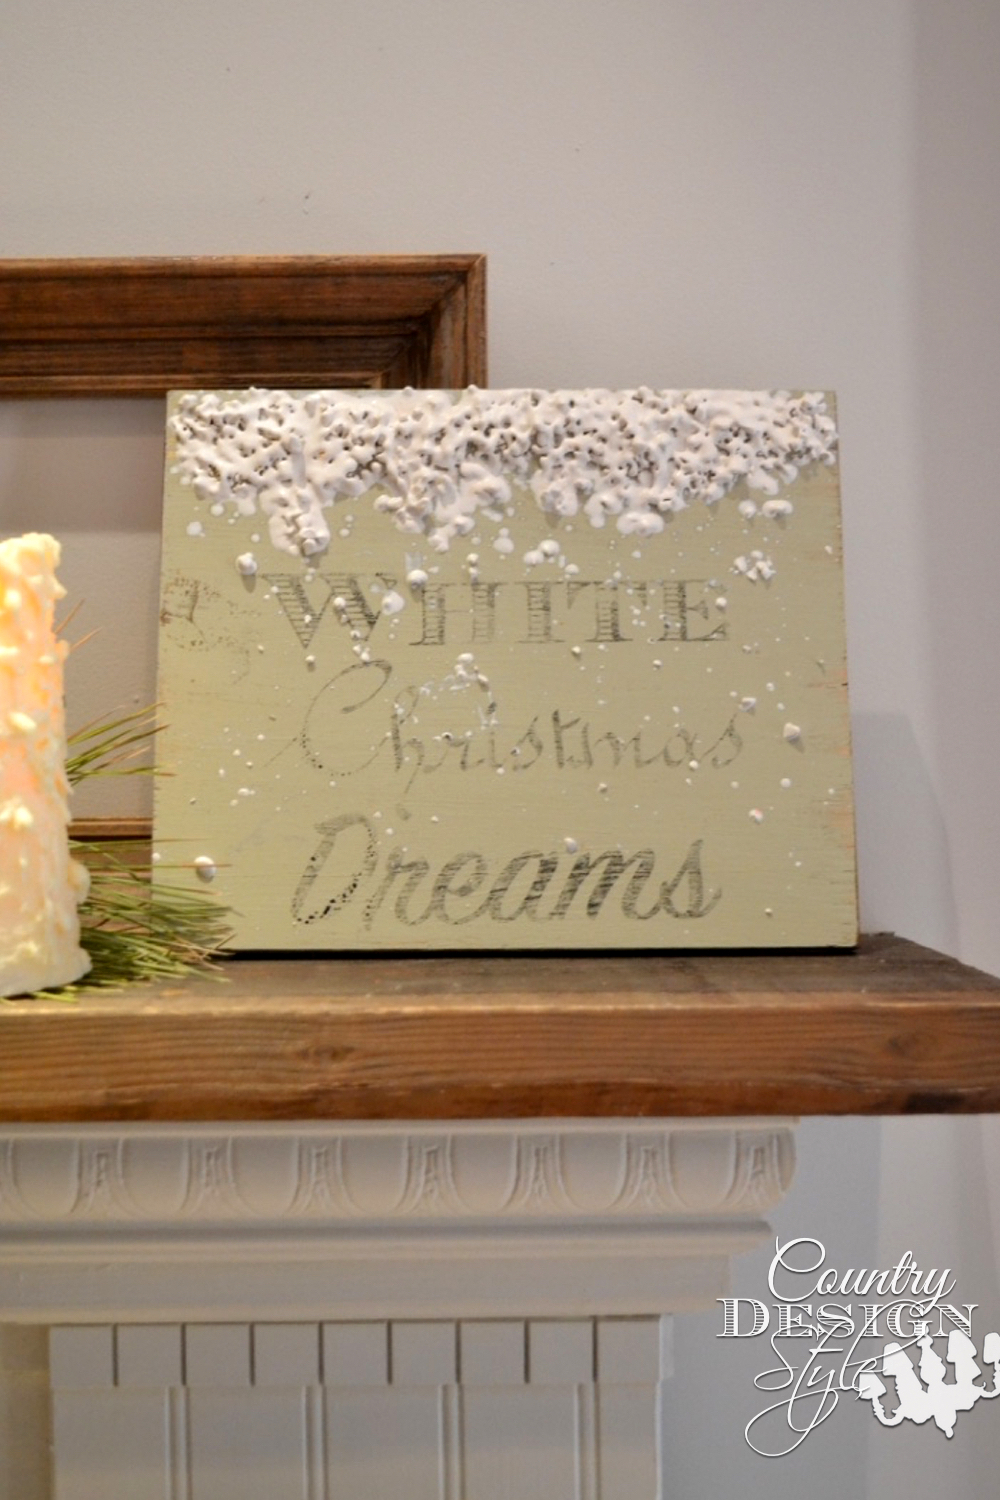 Scrap wood made into Christmas sign with chalk based paint, image transfer, and melting crayon art for melting snow. | countrydesignstyle.com